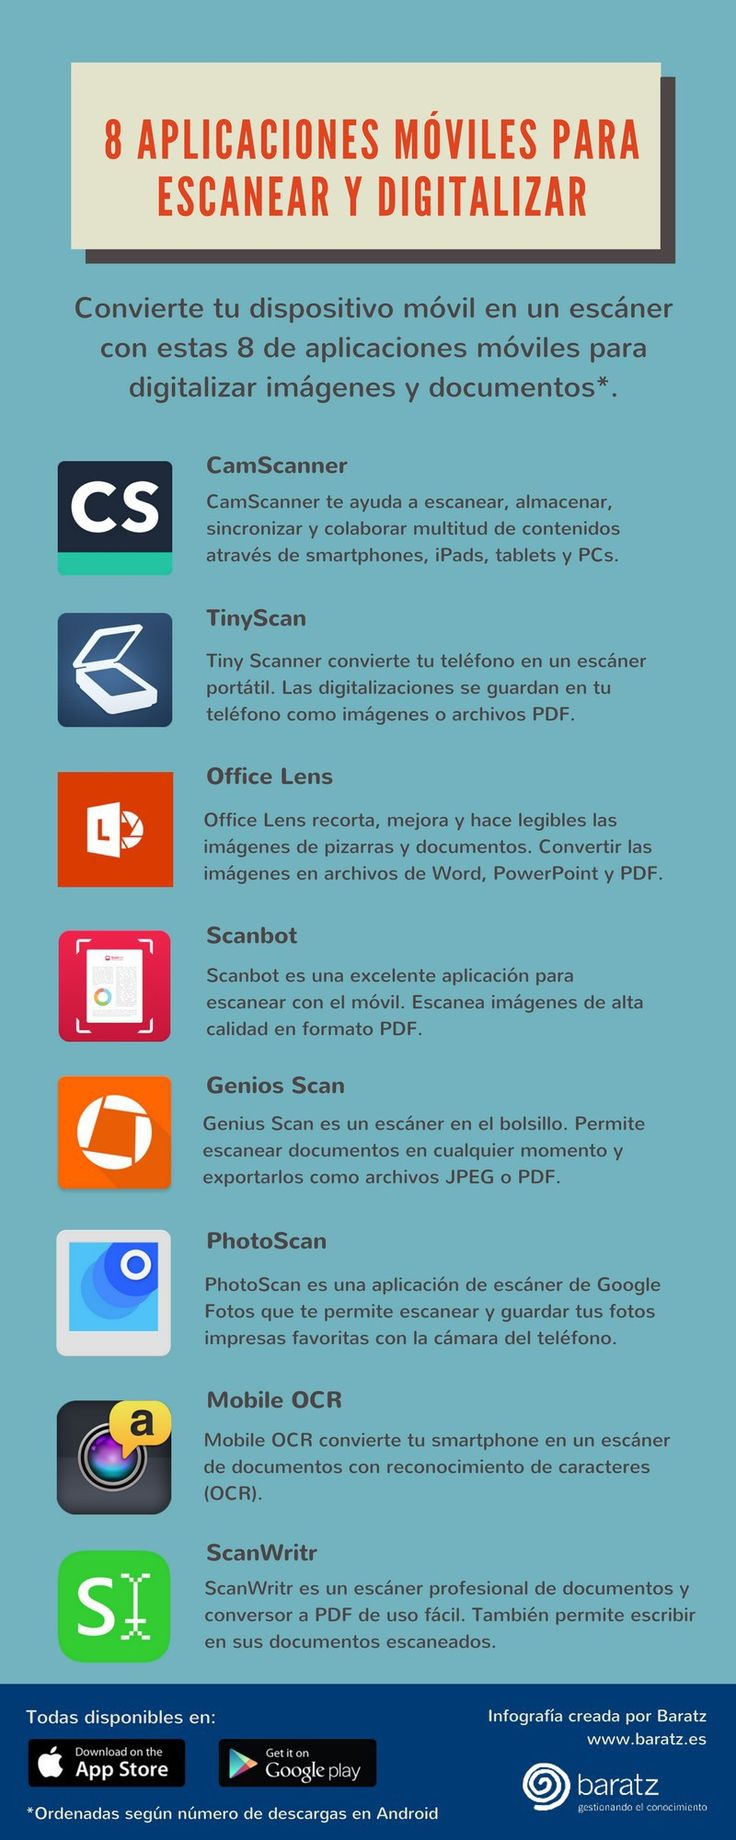 8 APPs móviles para escanear y digitalizar documentos #infografia